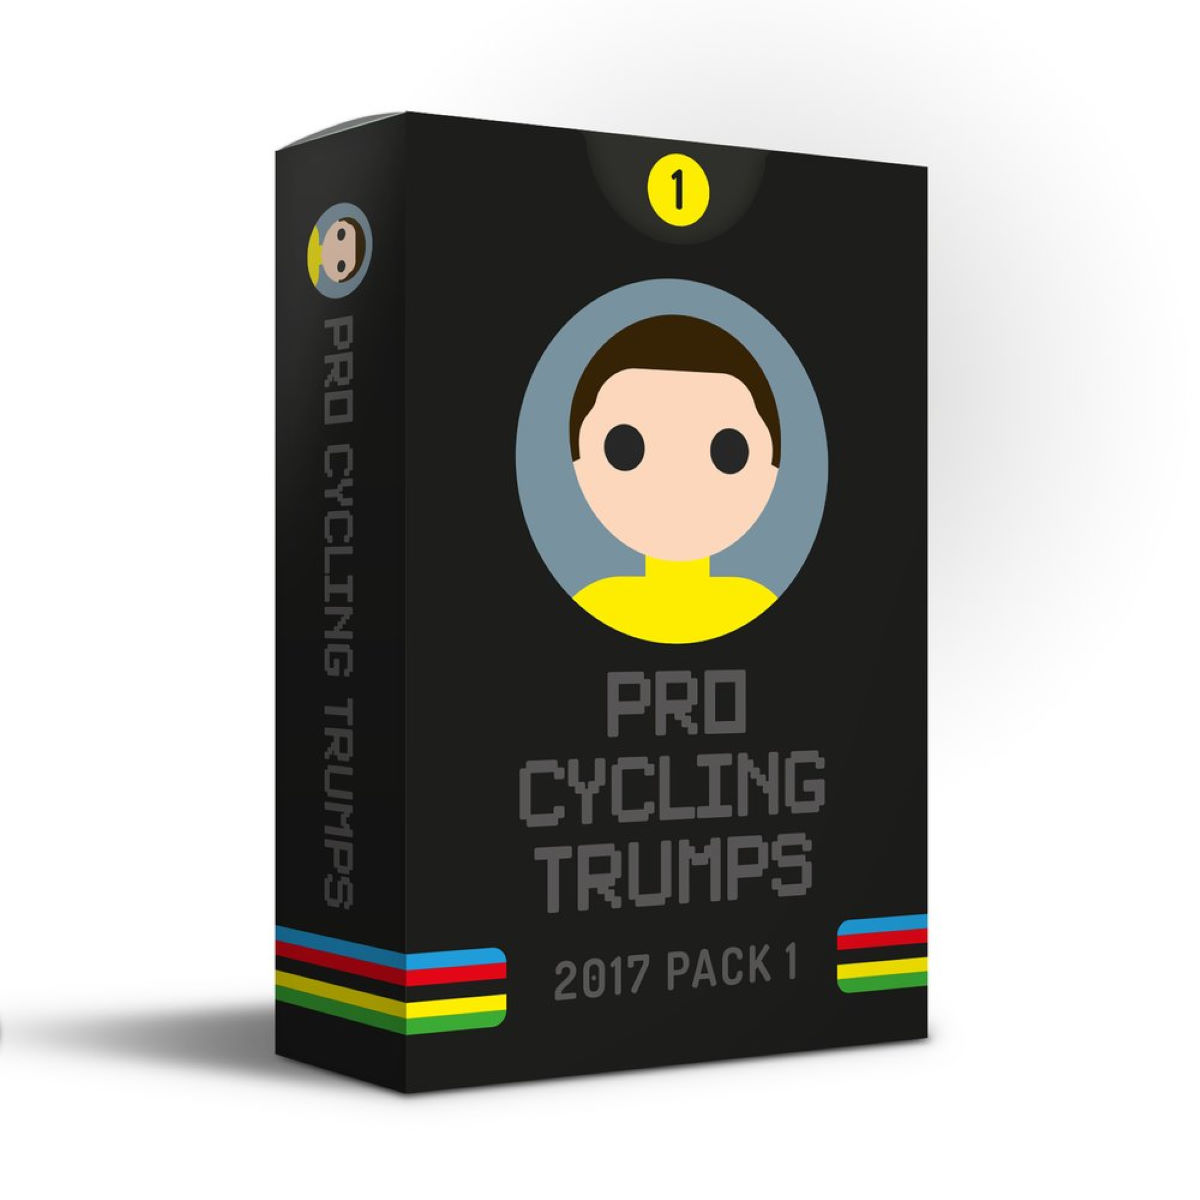 Pro Cycling Trumps 2017 Pack 1 - Regalos